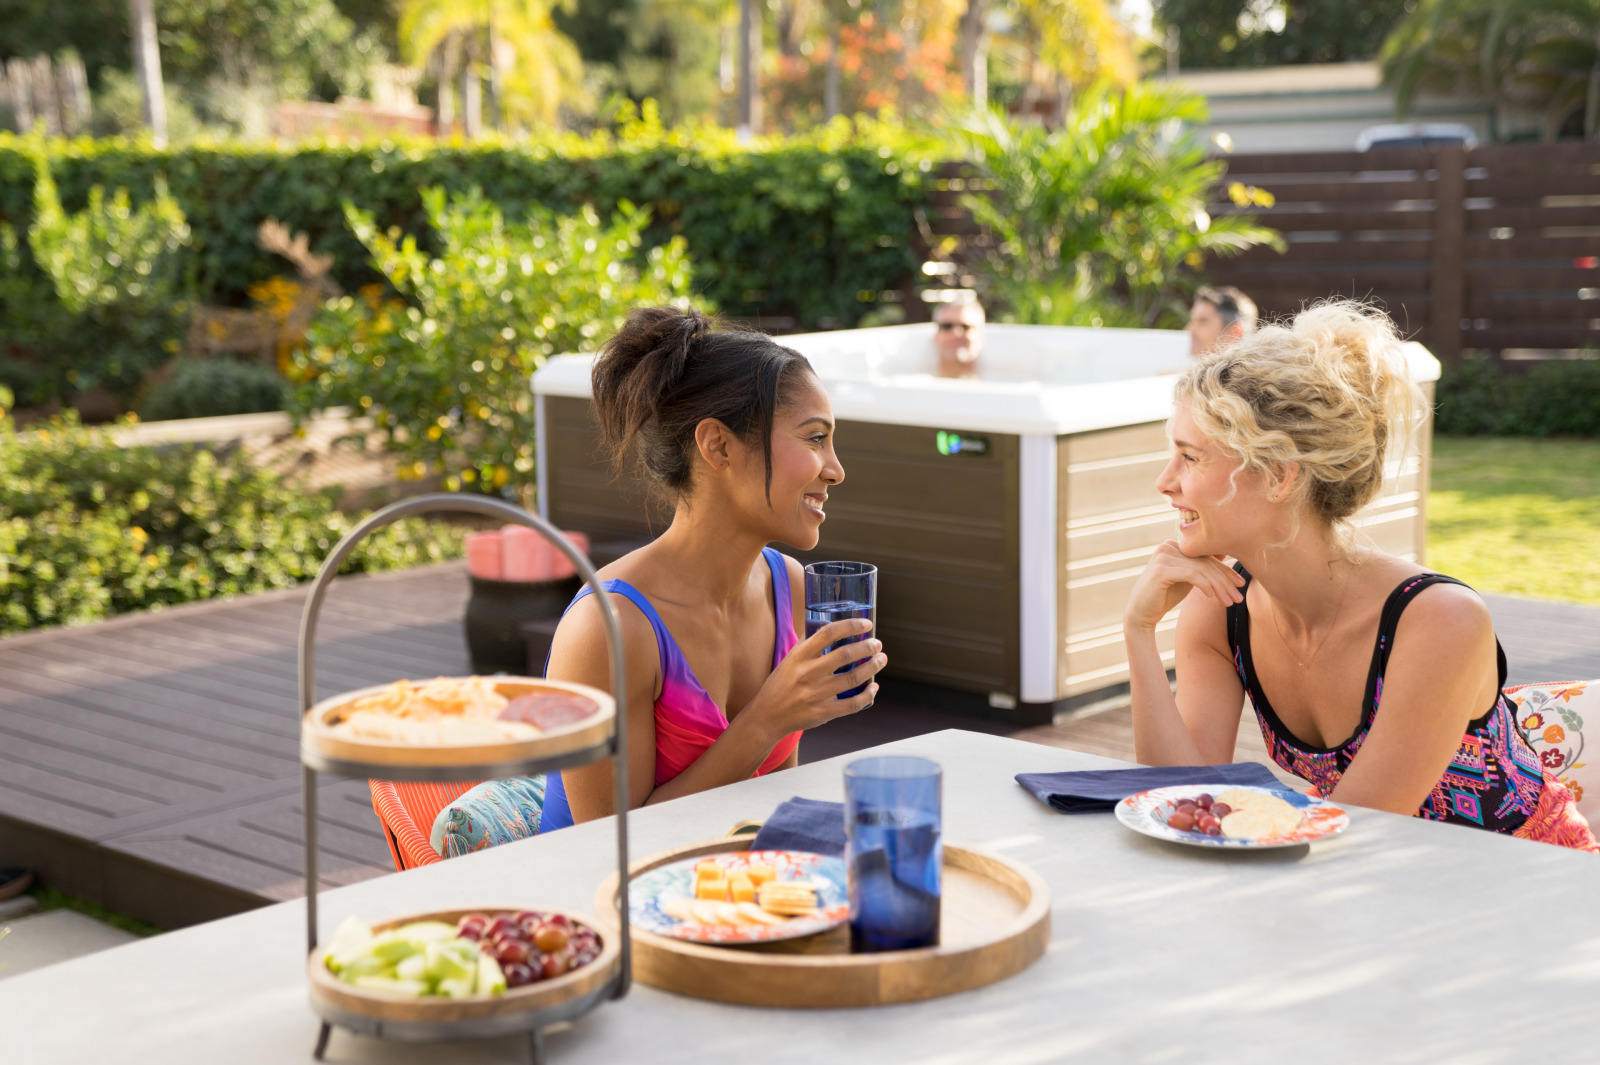 Hot Tub Safety Basics for Adults and Kids